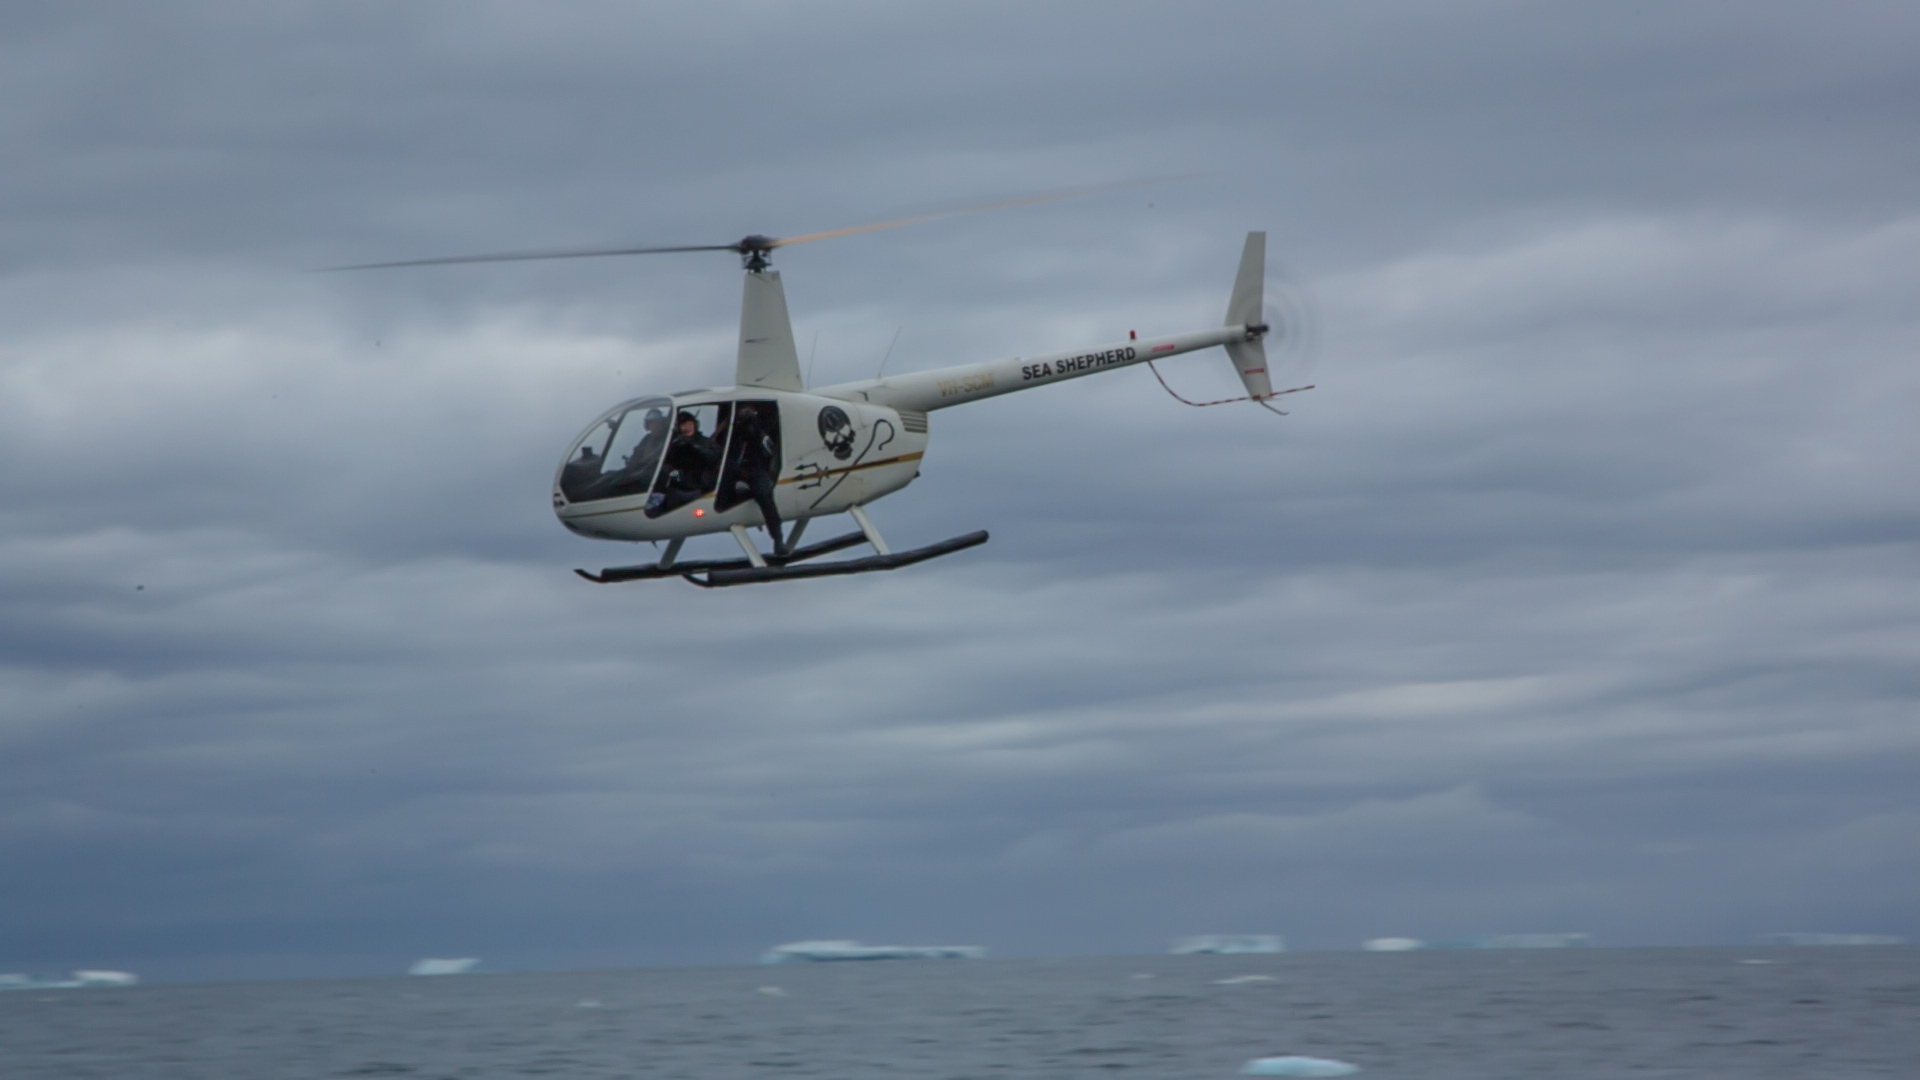 sea shepherd helicopter